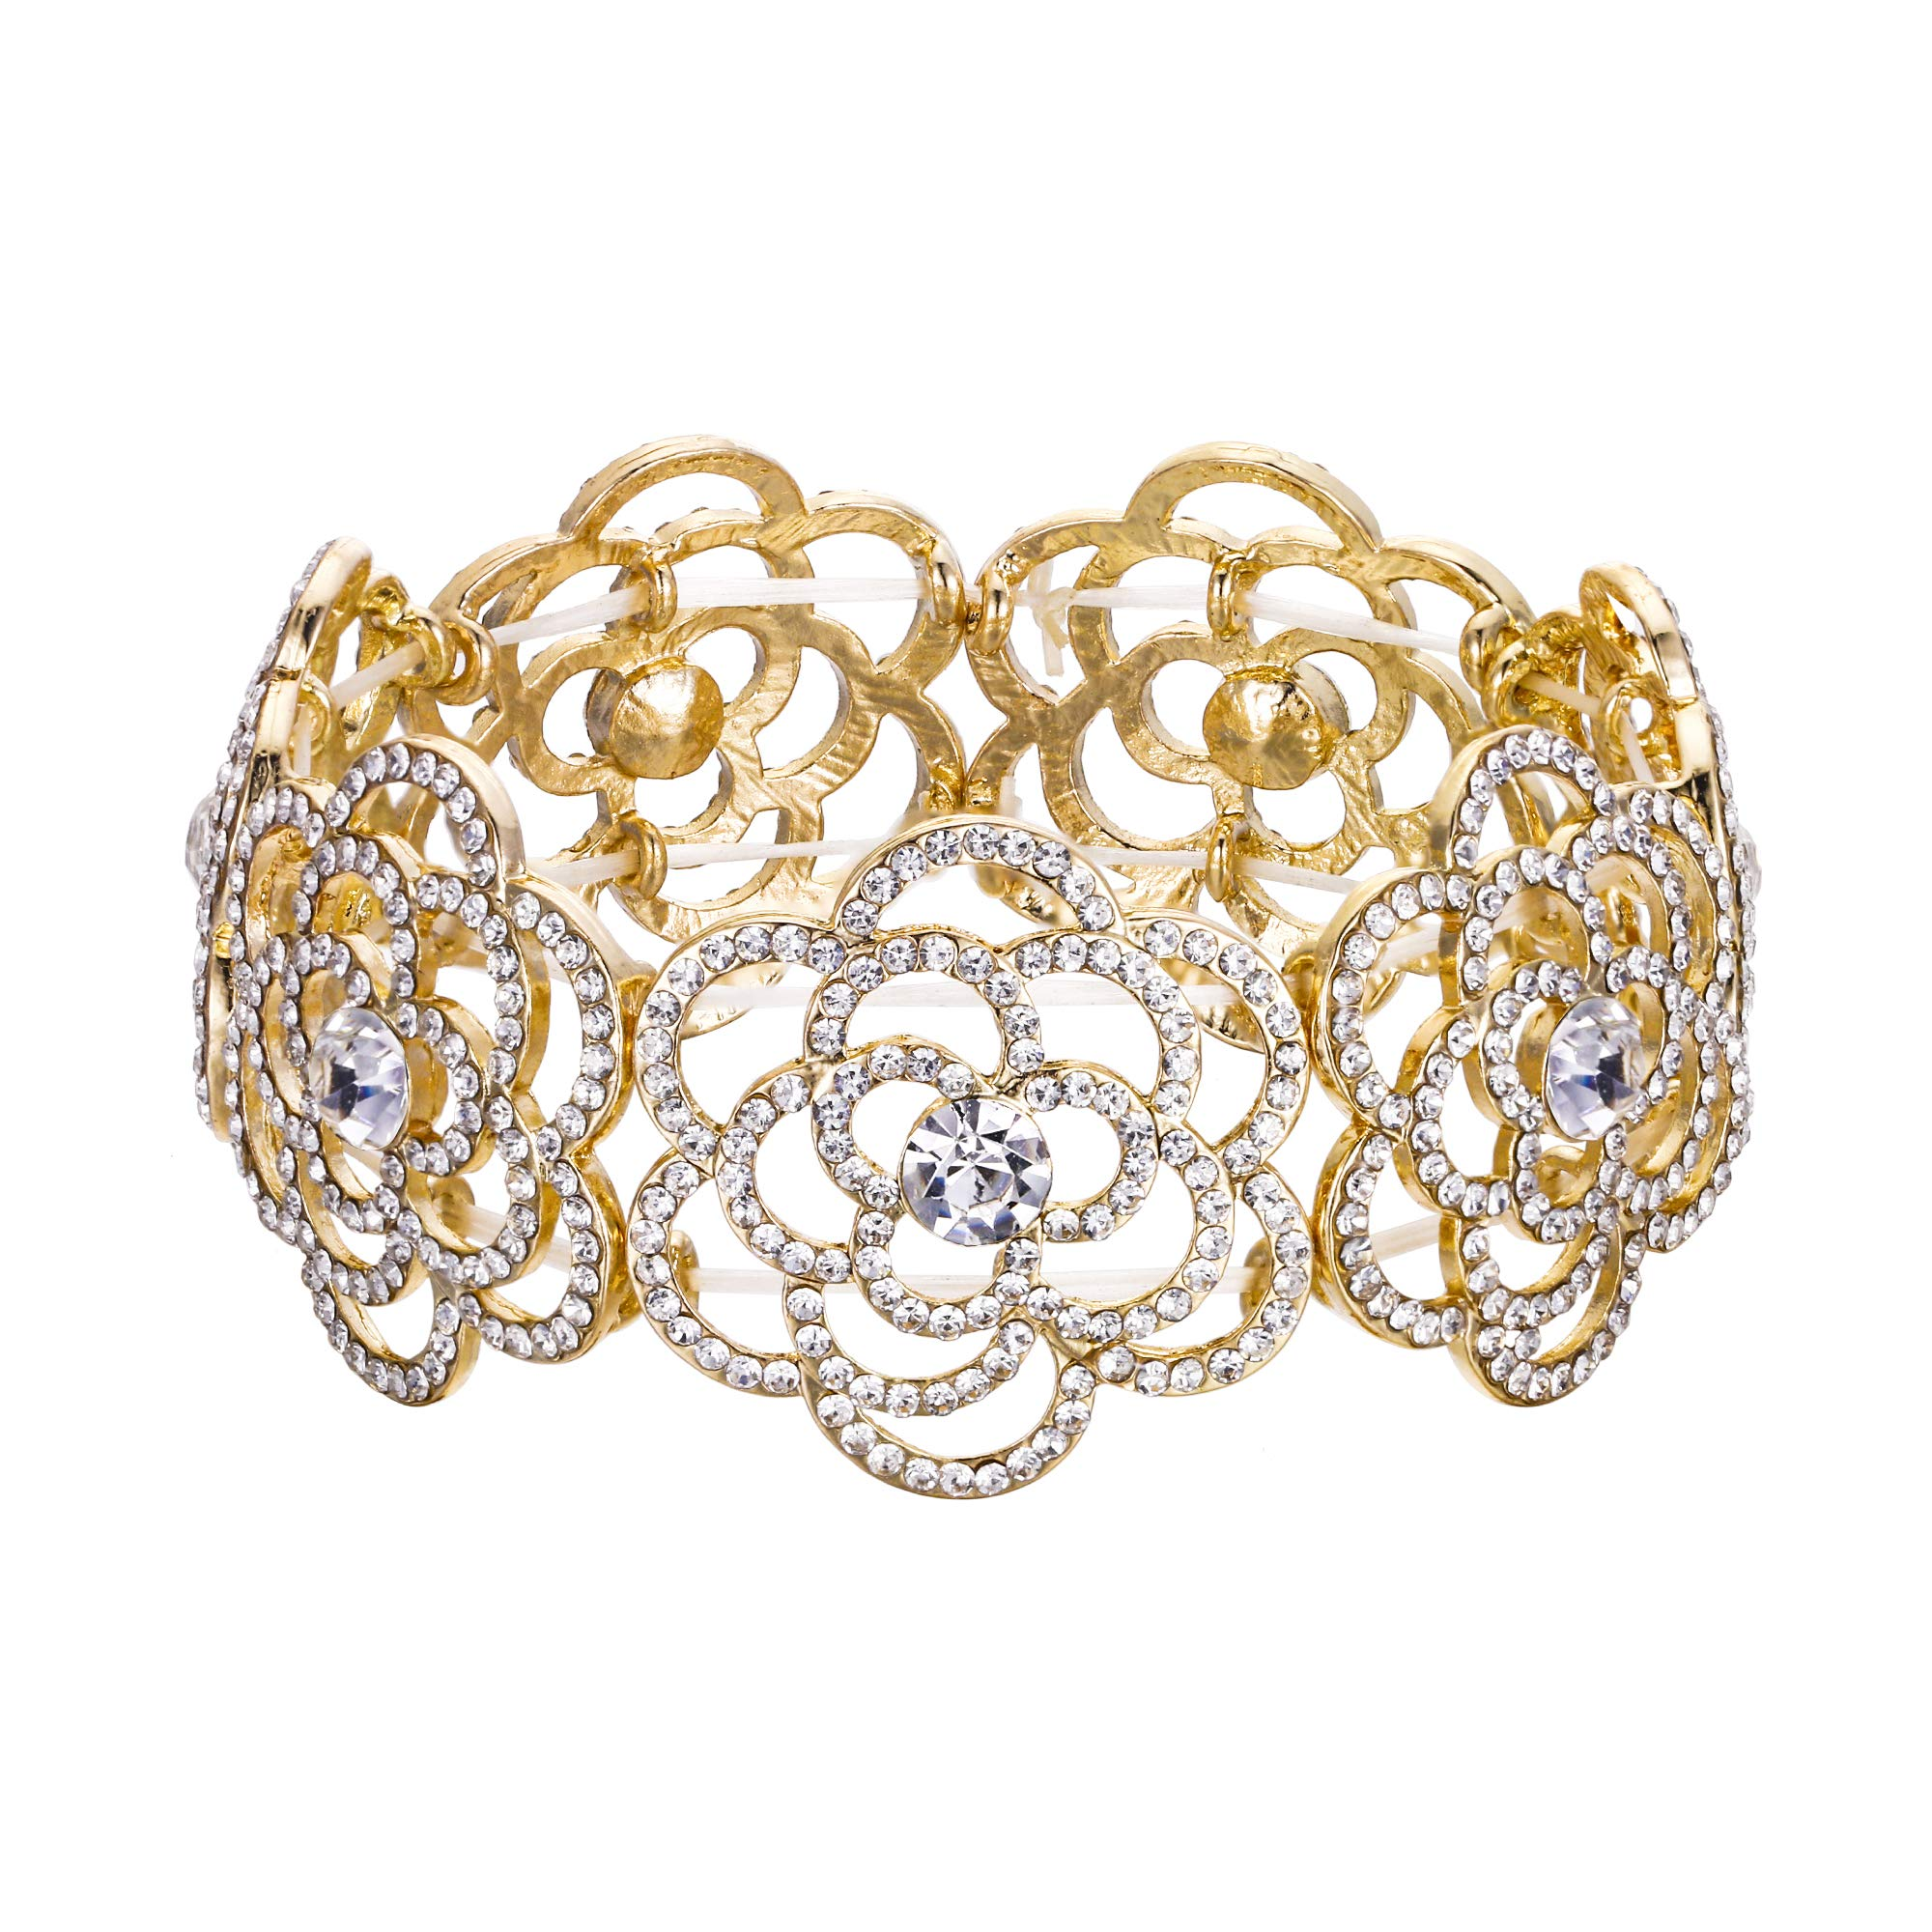 BriLove Women's Wedding Bridal Crystal Hollow Flower Tennis Stretch Bracelet Clear Gold-Toned